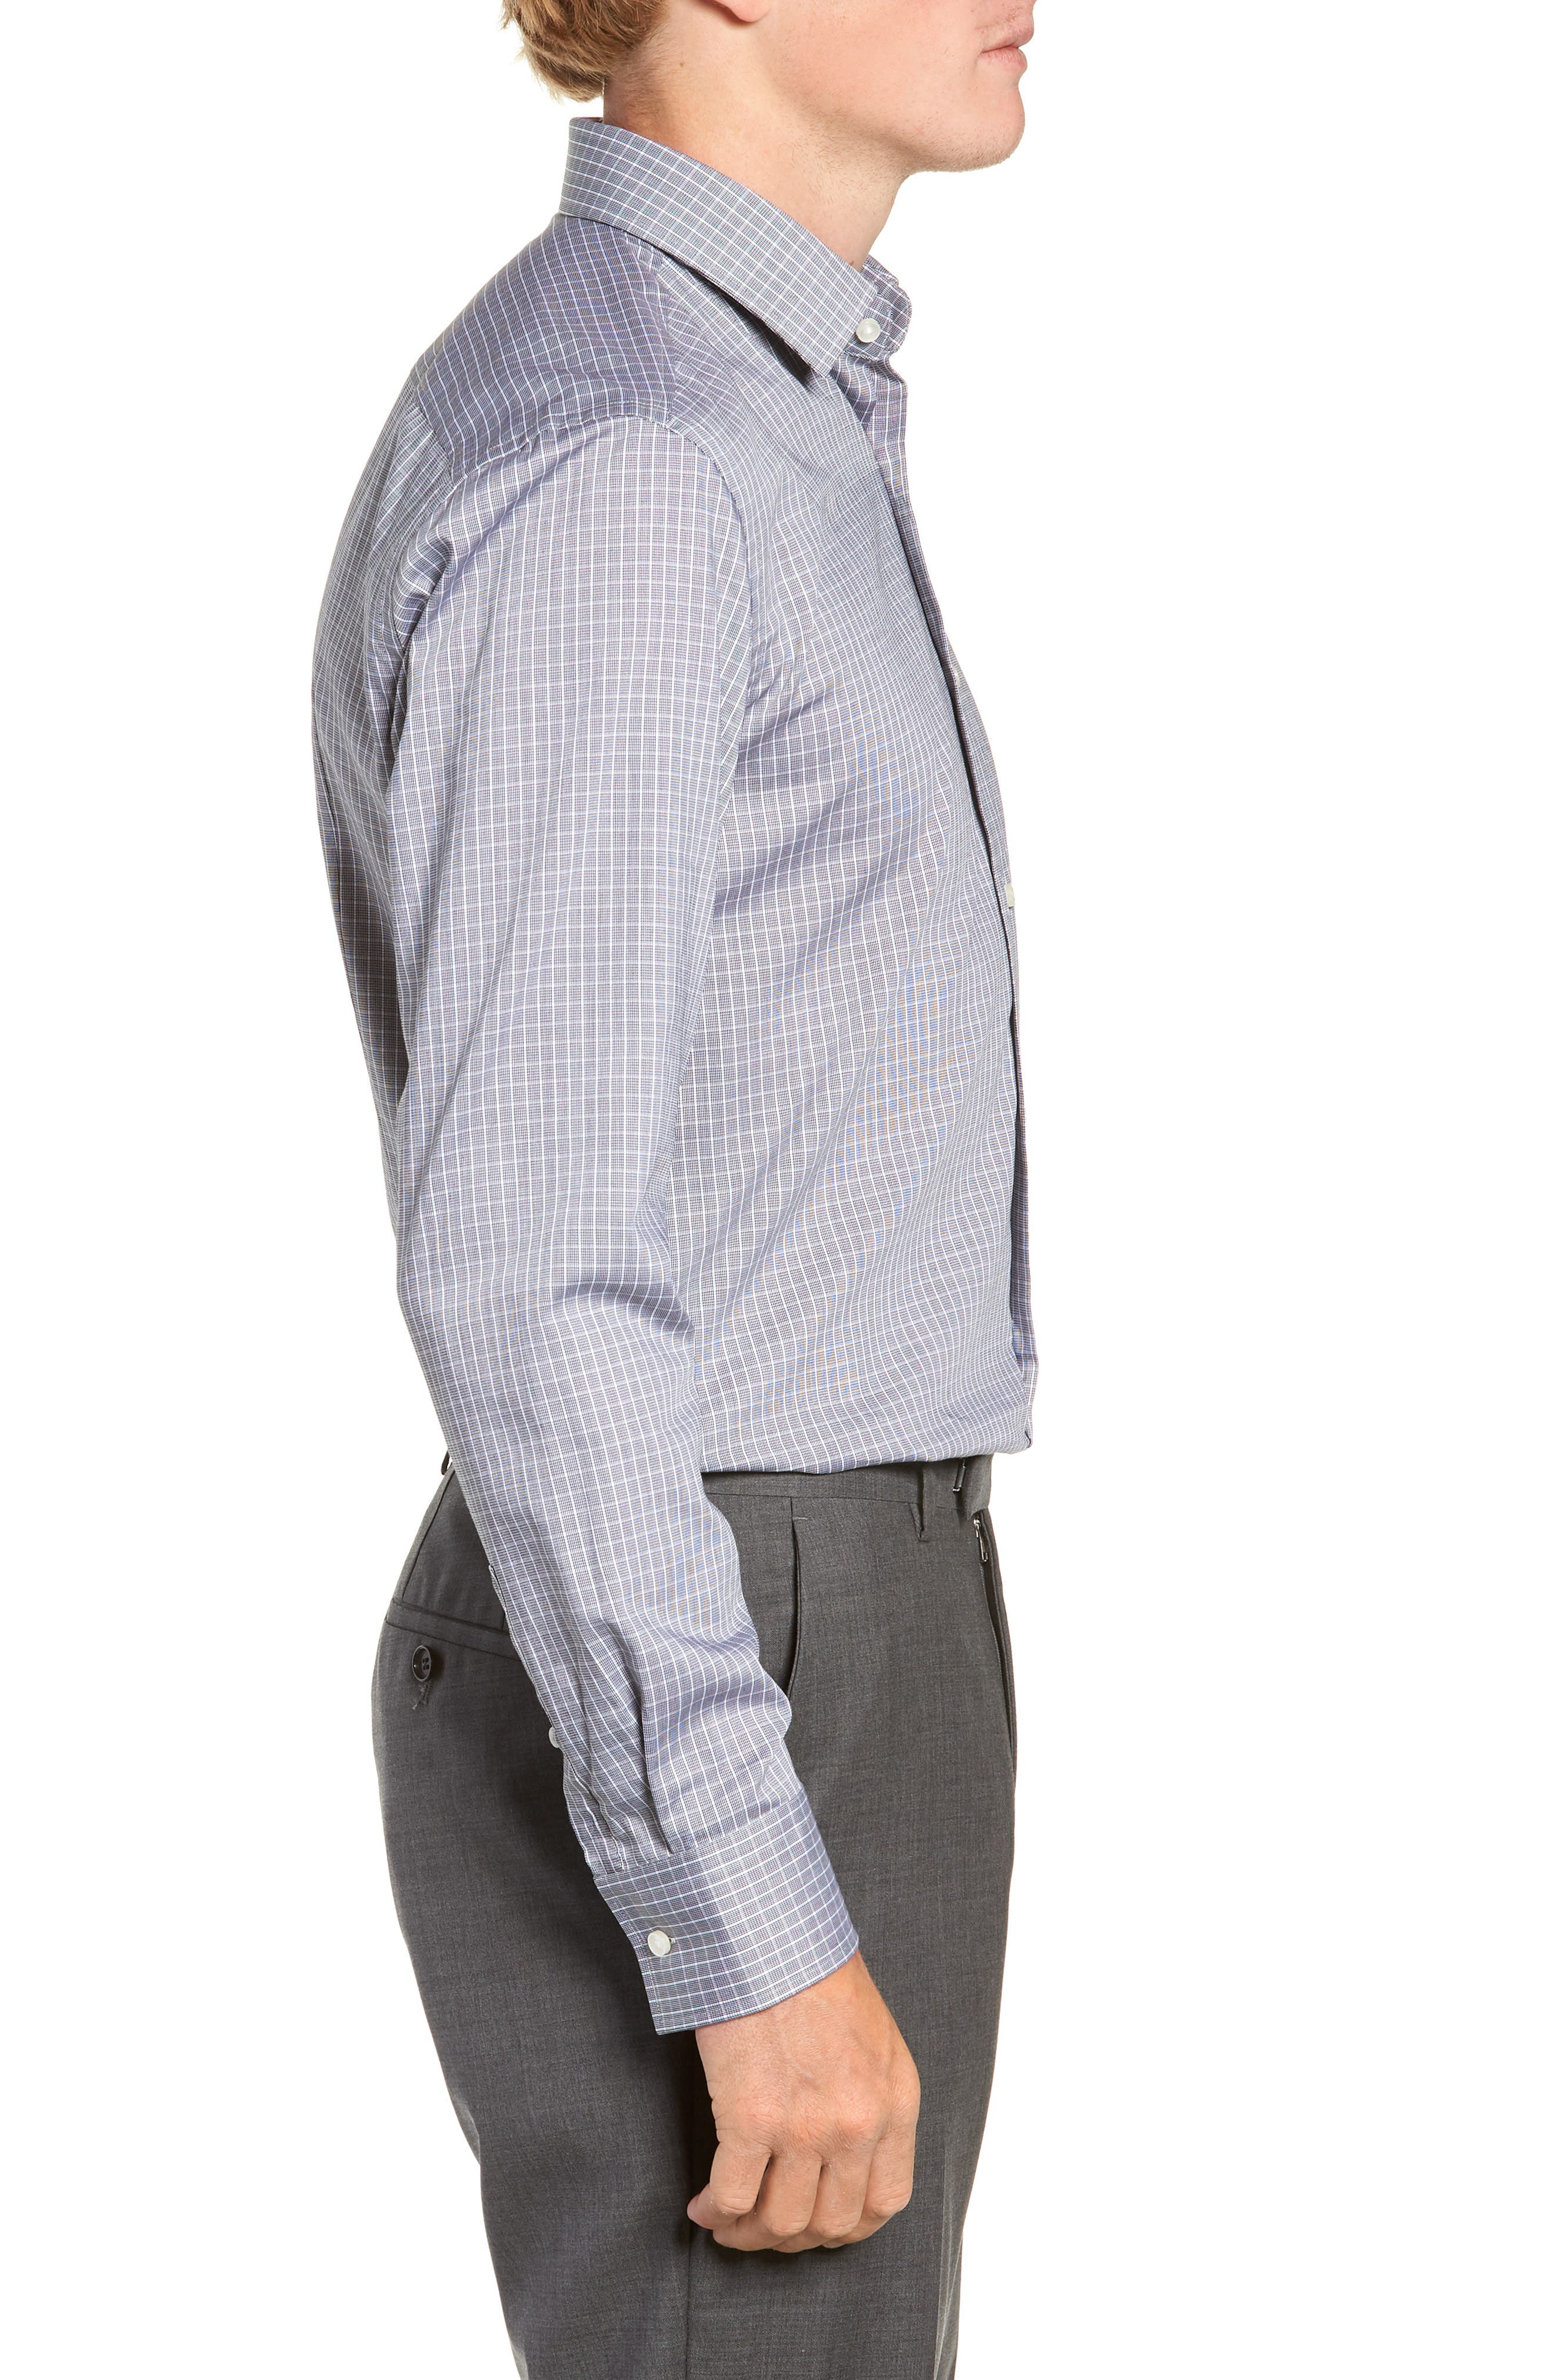 Jenno Trim Fit Check Dress Shirt,                             Alternate thumbnail 4, color,                             003